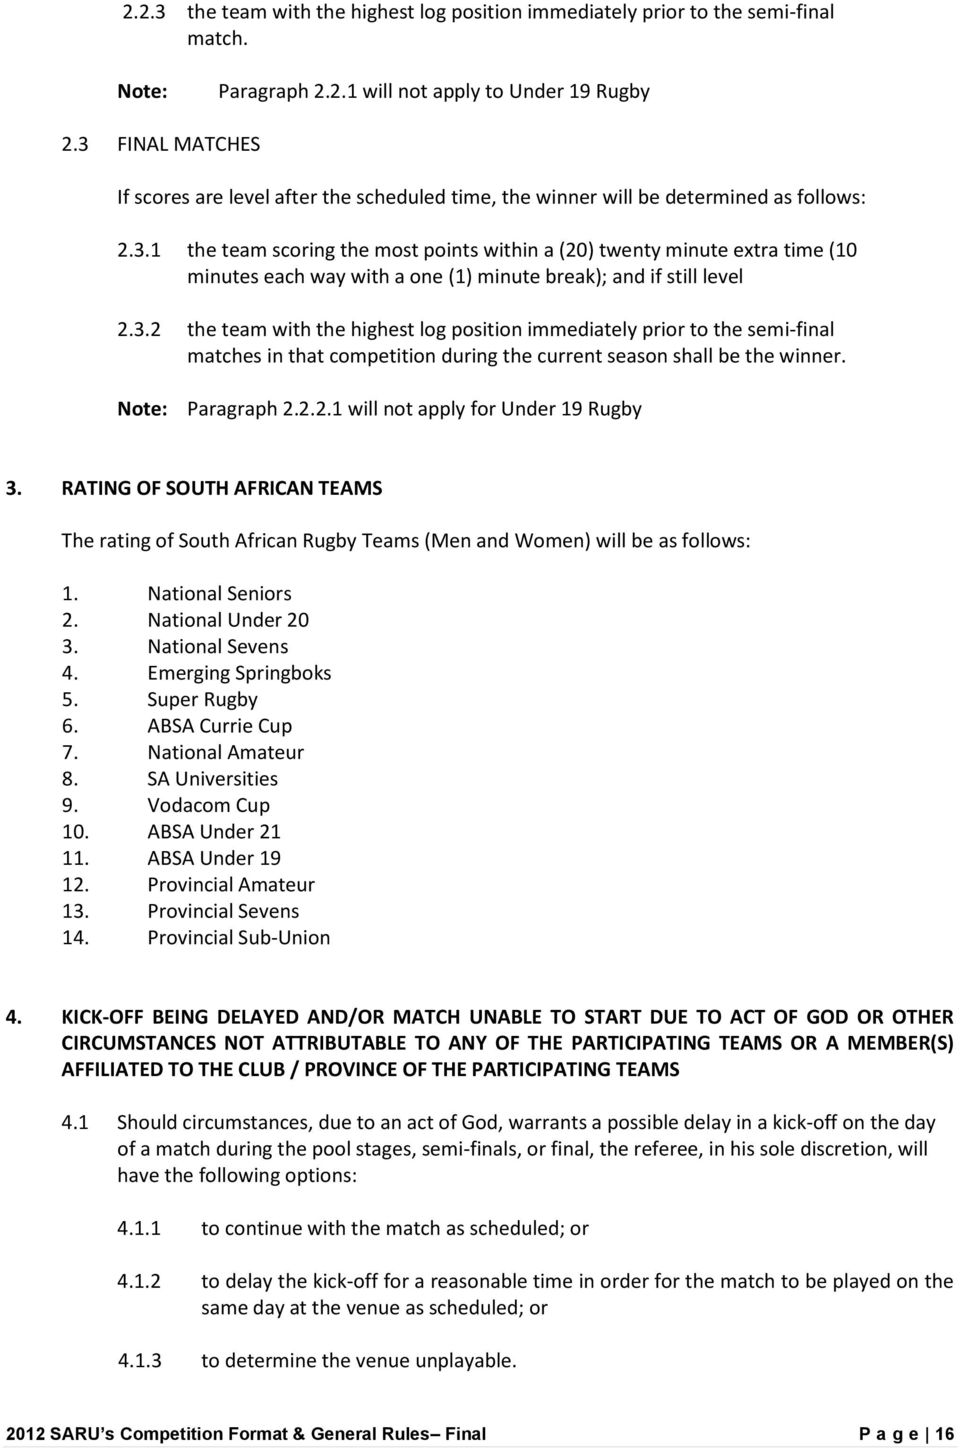 3.2 the team with the highest log position immediately prior to the semi-final matches in that competition during the current season shall be the winner. Note: Paragraph 2.2.2.1 will not apply for Under 19 Rugby 3.